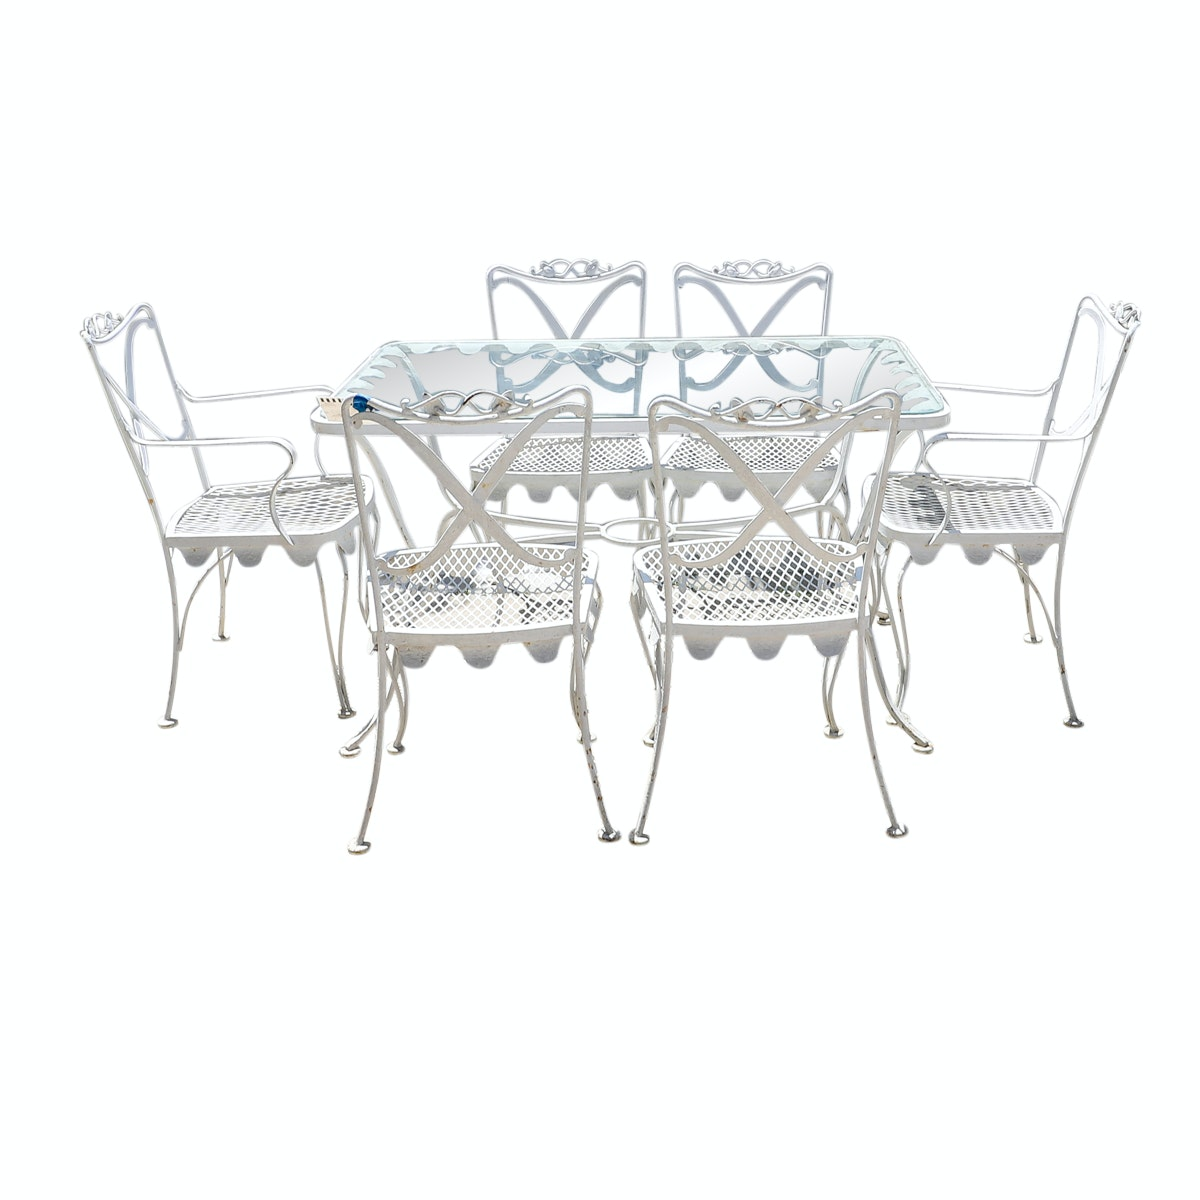 "Woodard ""Chatelaine"" Glass Top Wrought Iron Patio Dining Table with Chairs"